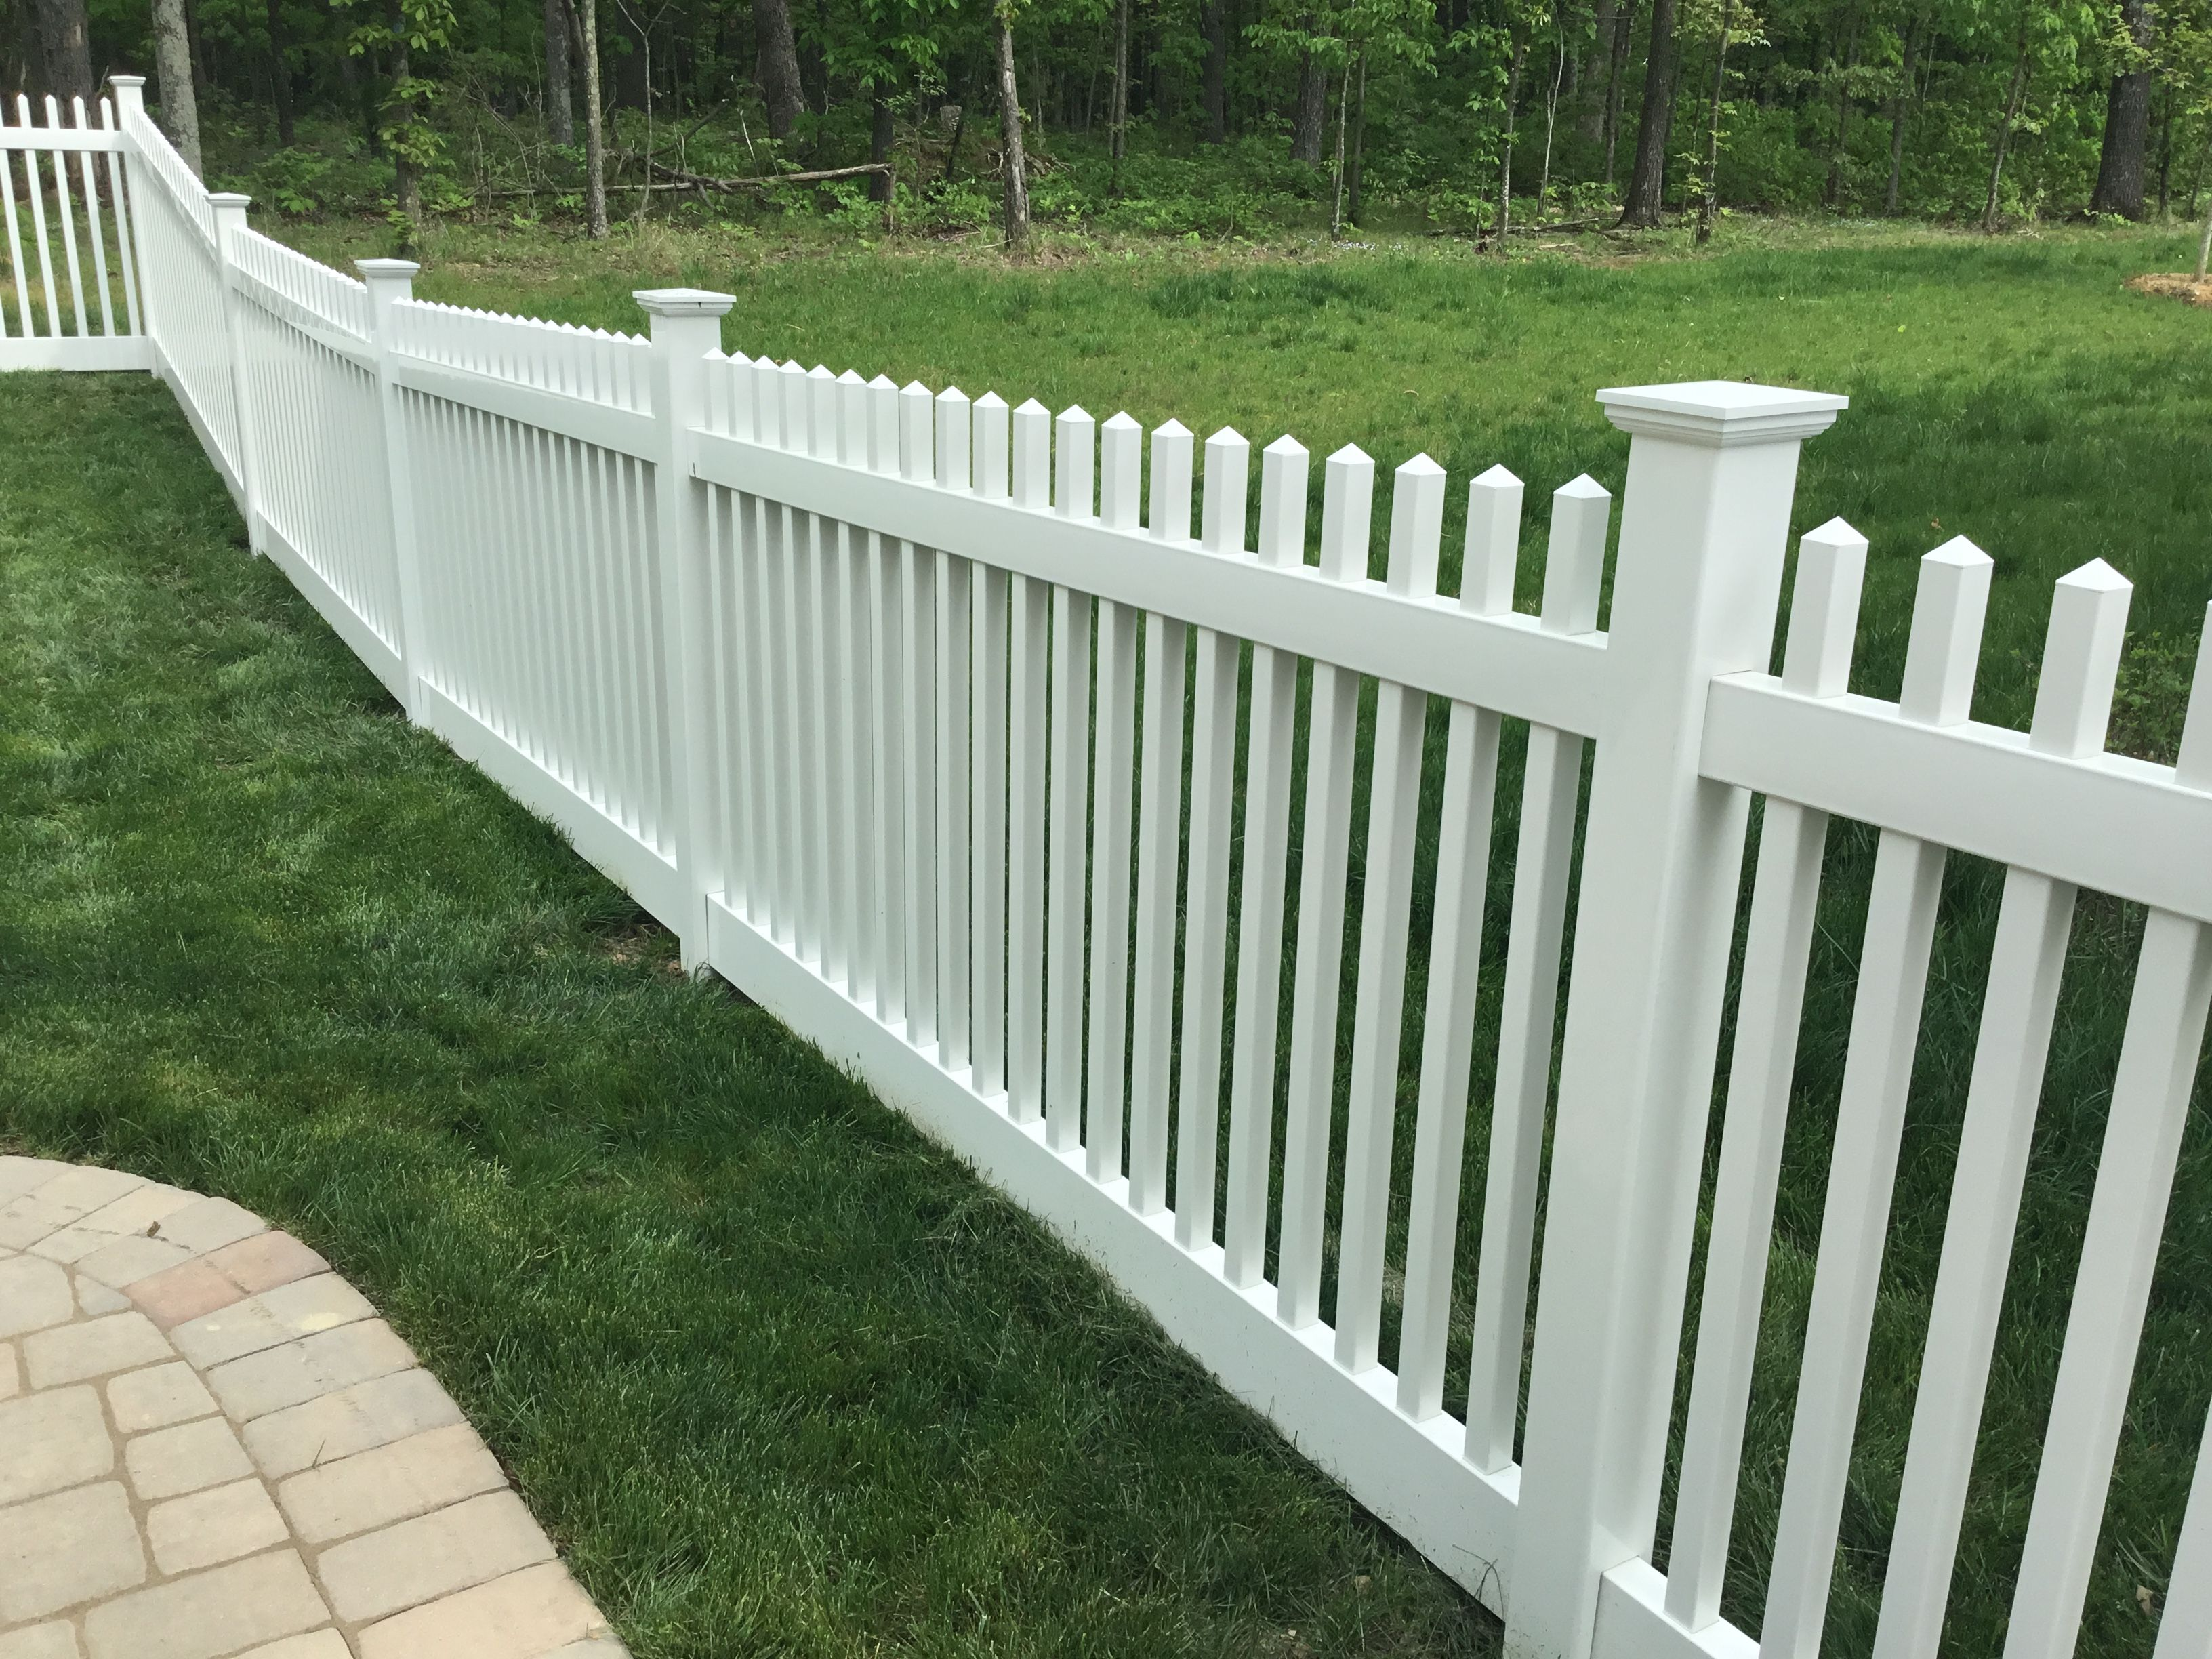 Vinyl Picket Fence White Vinyl Picket Fence Design Ideas Beautiful